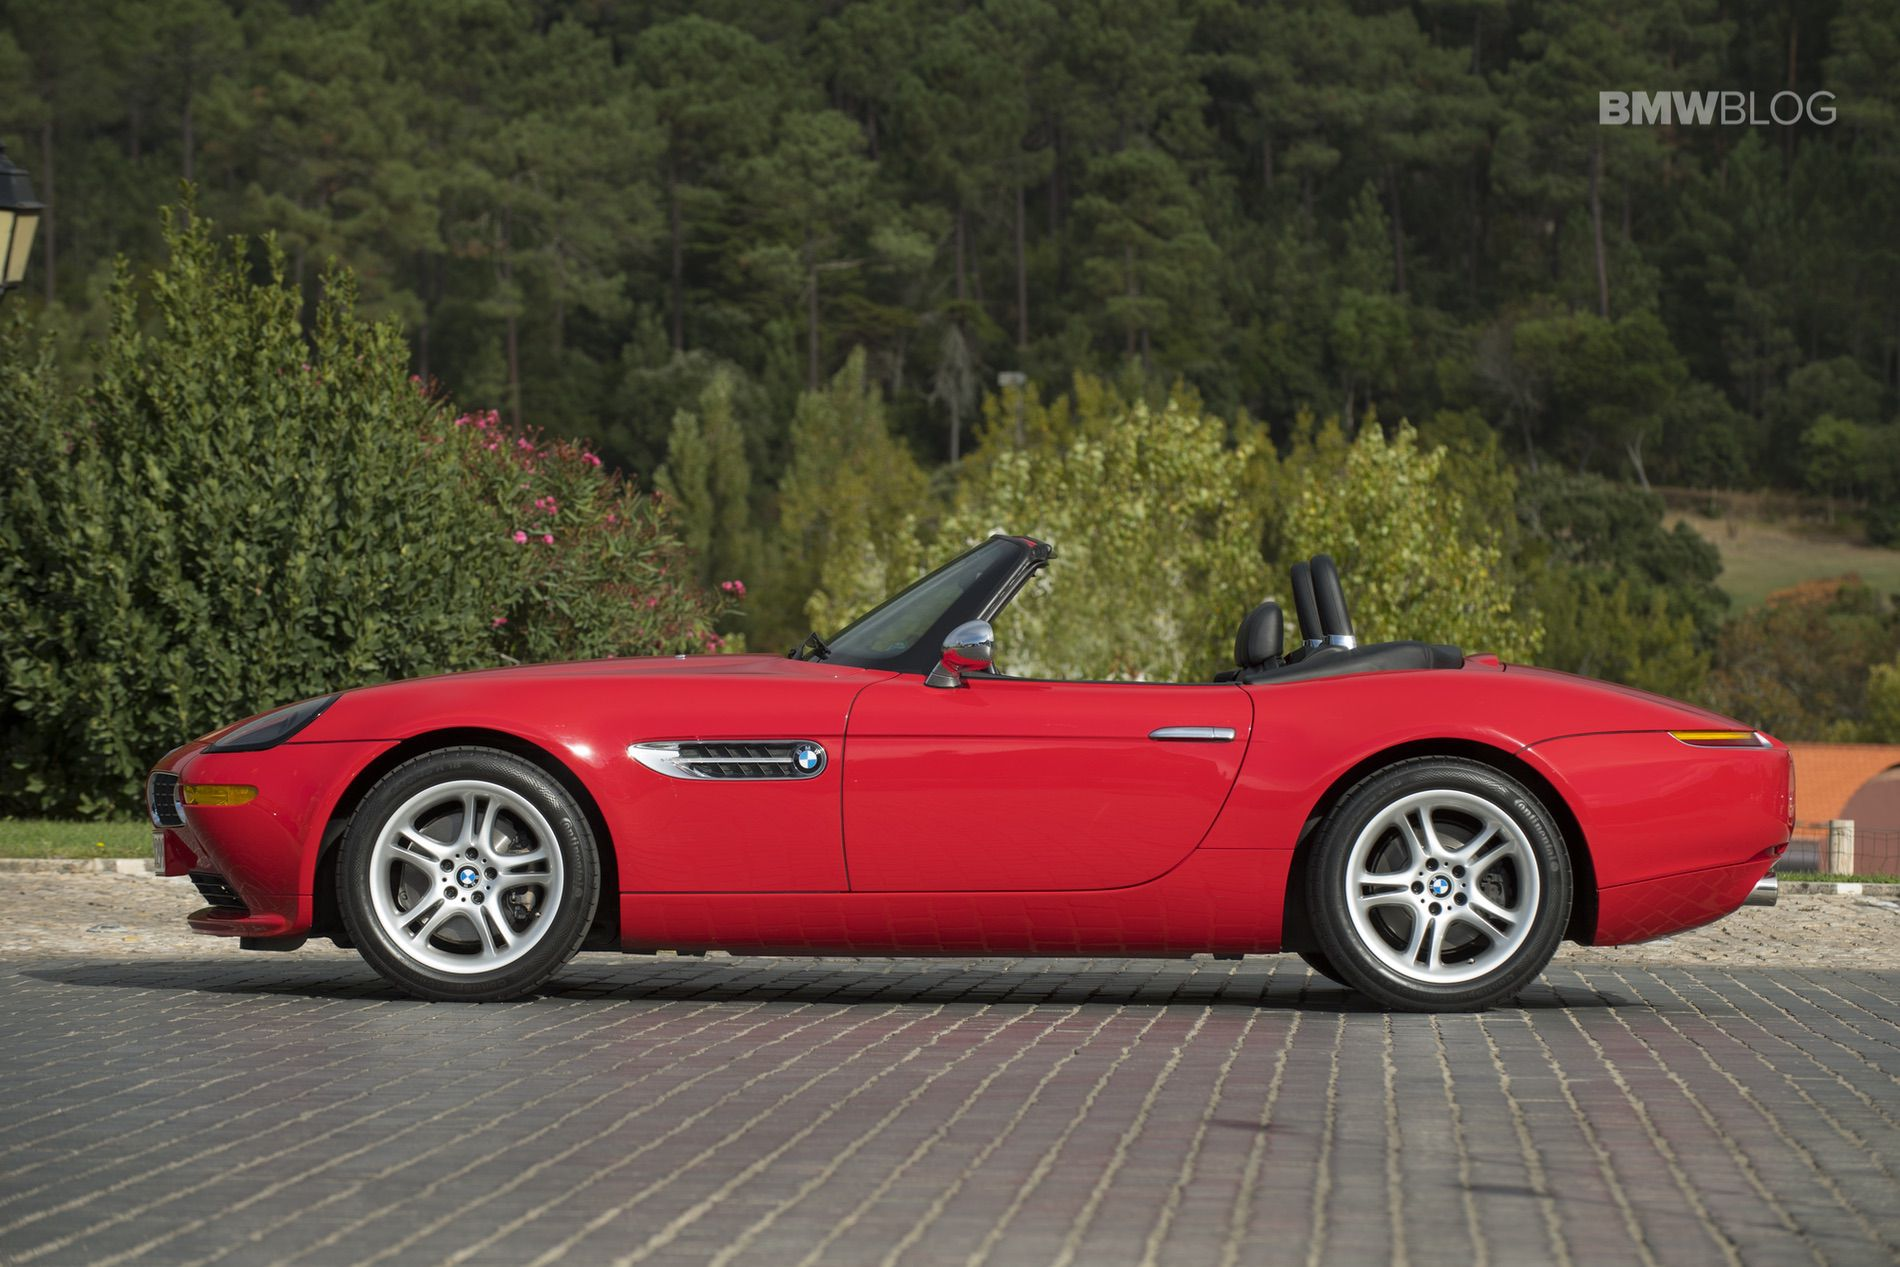 Bmw Z8 Roadster Stunning Photo Gallery